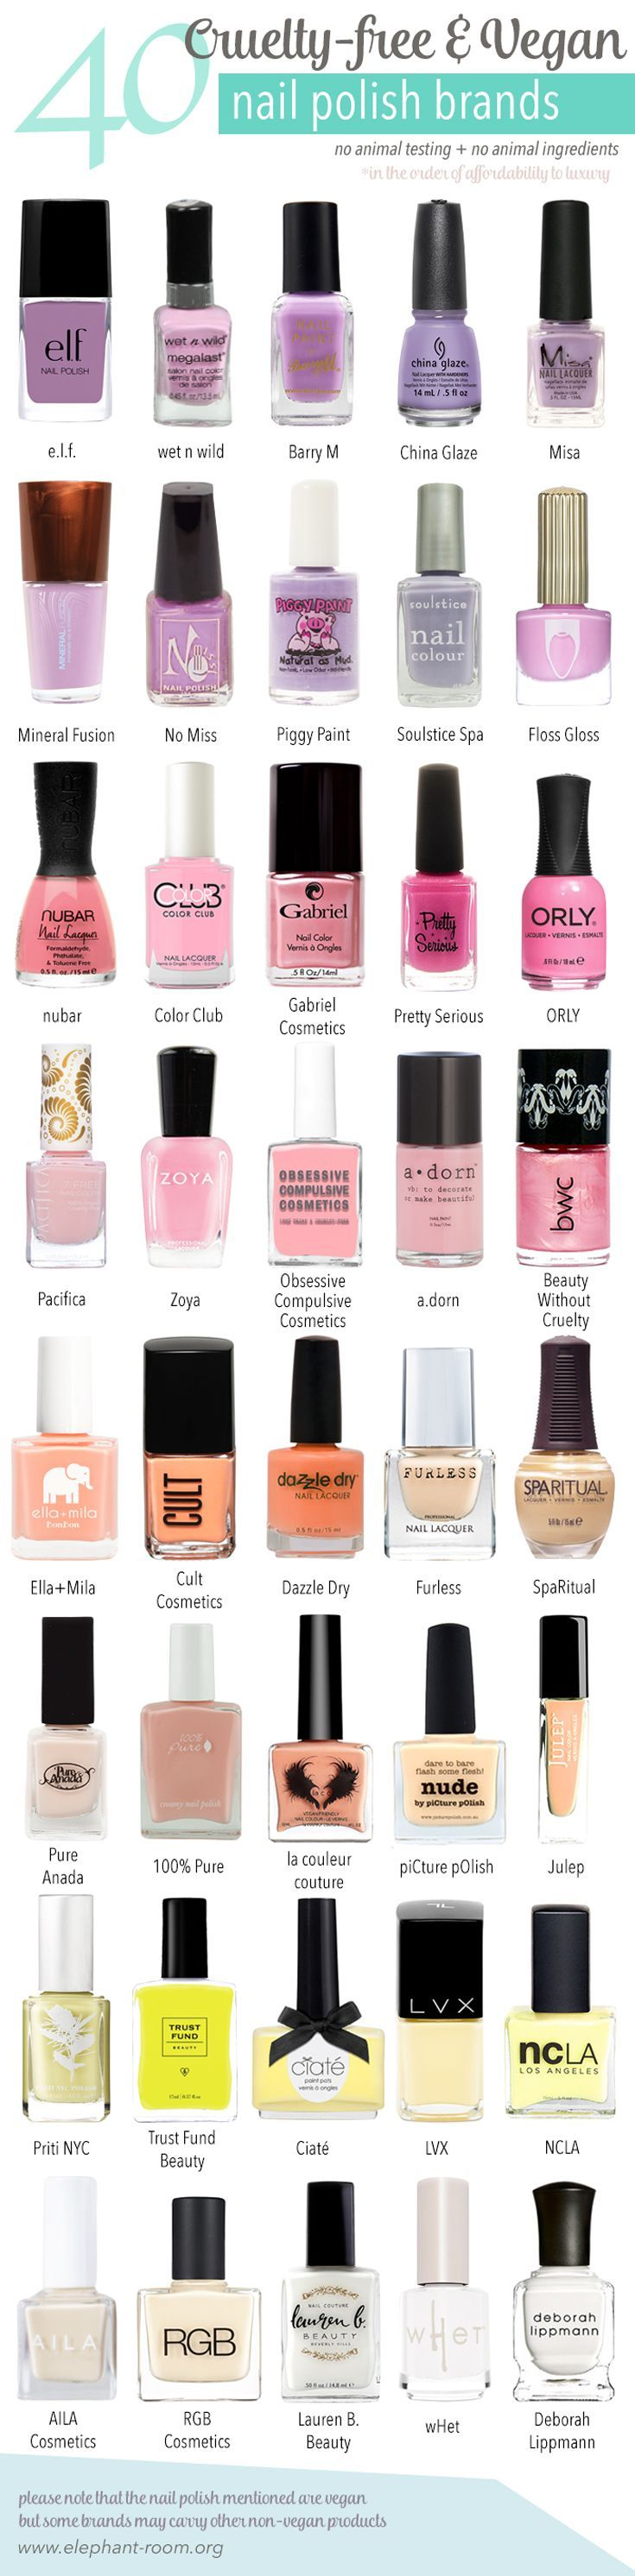 A list of 40 Cruelty-Free and Vegan Nail Polish Brands!